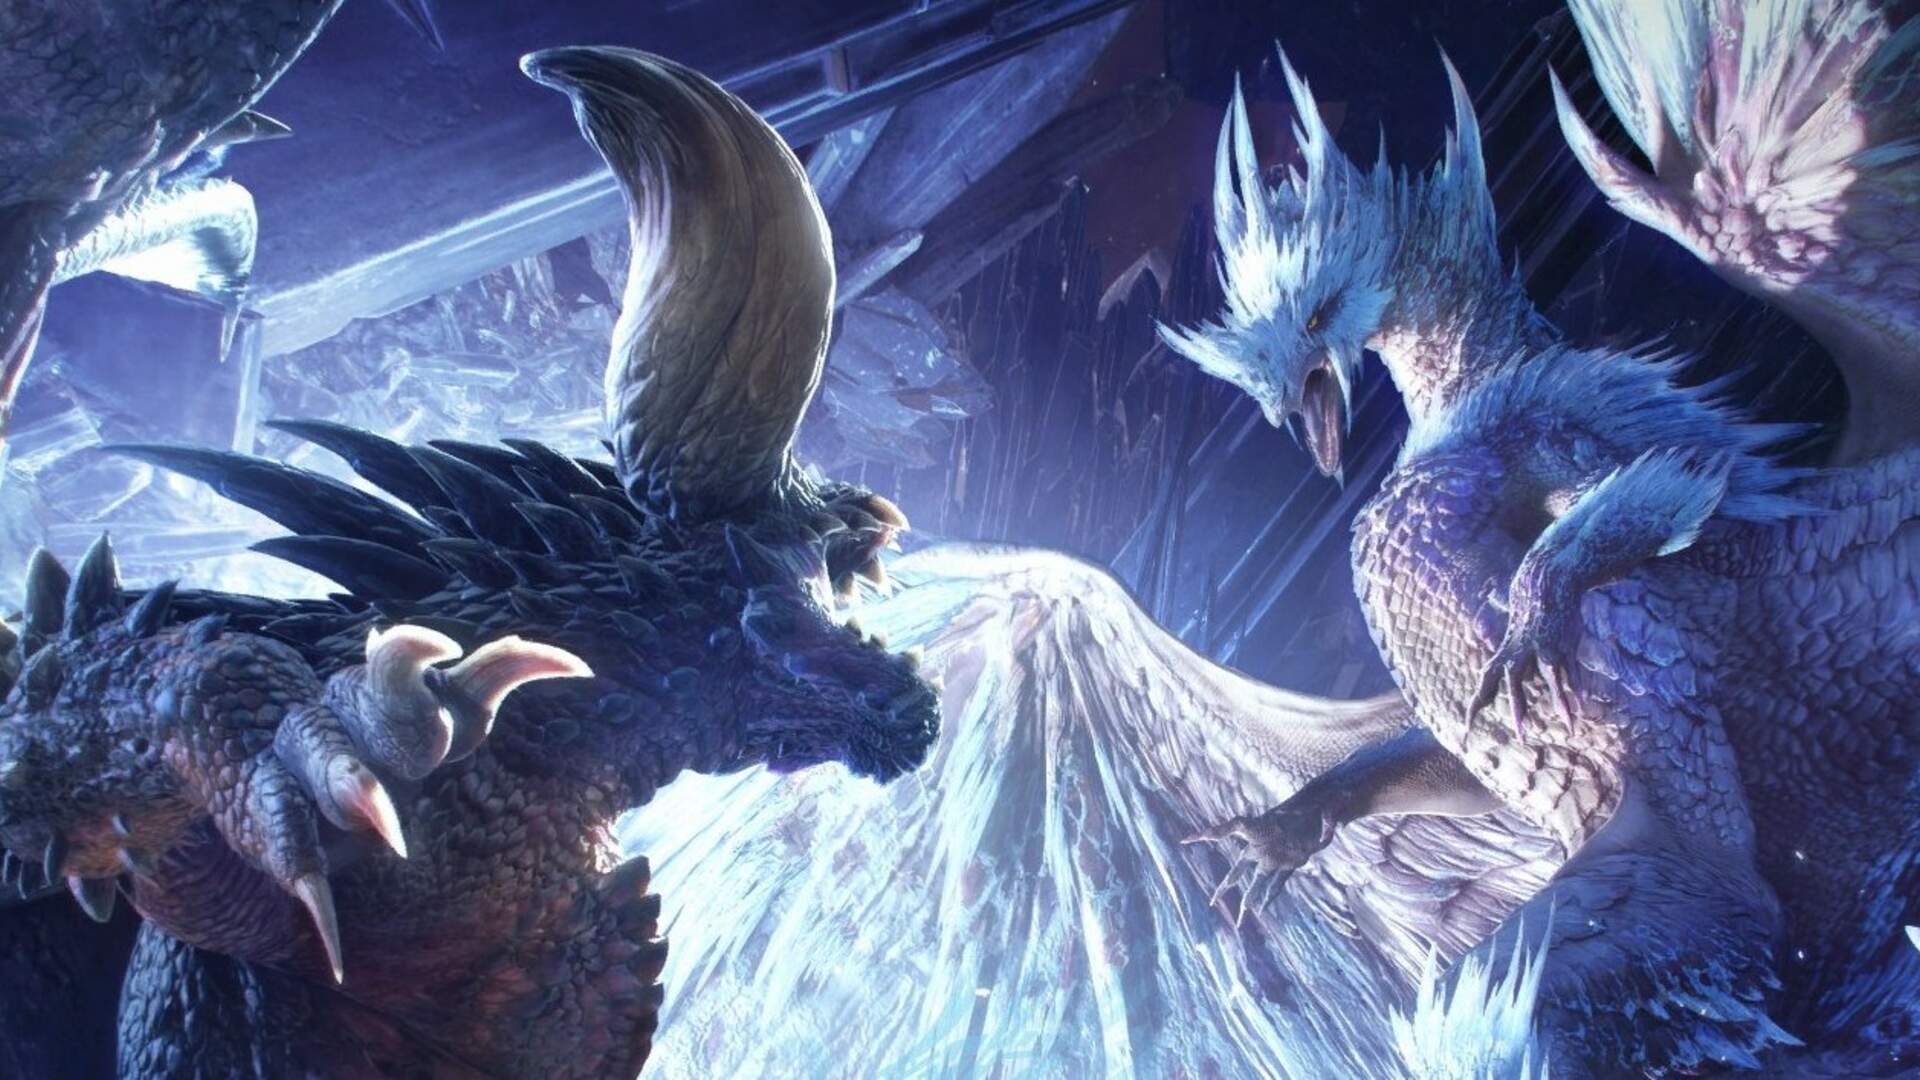 Monster Hunter World Iceborne: How to Defeat the Barioth